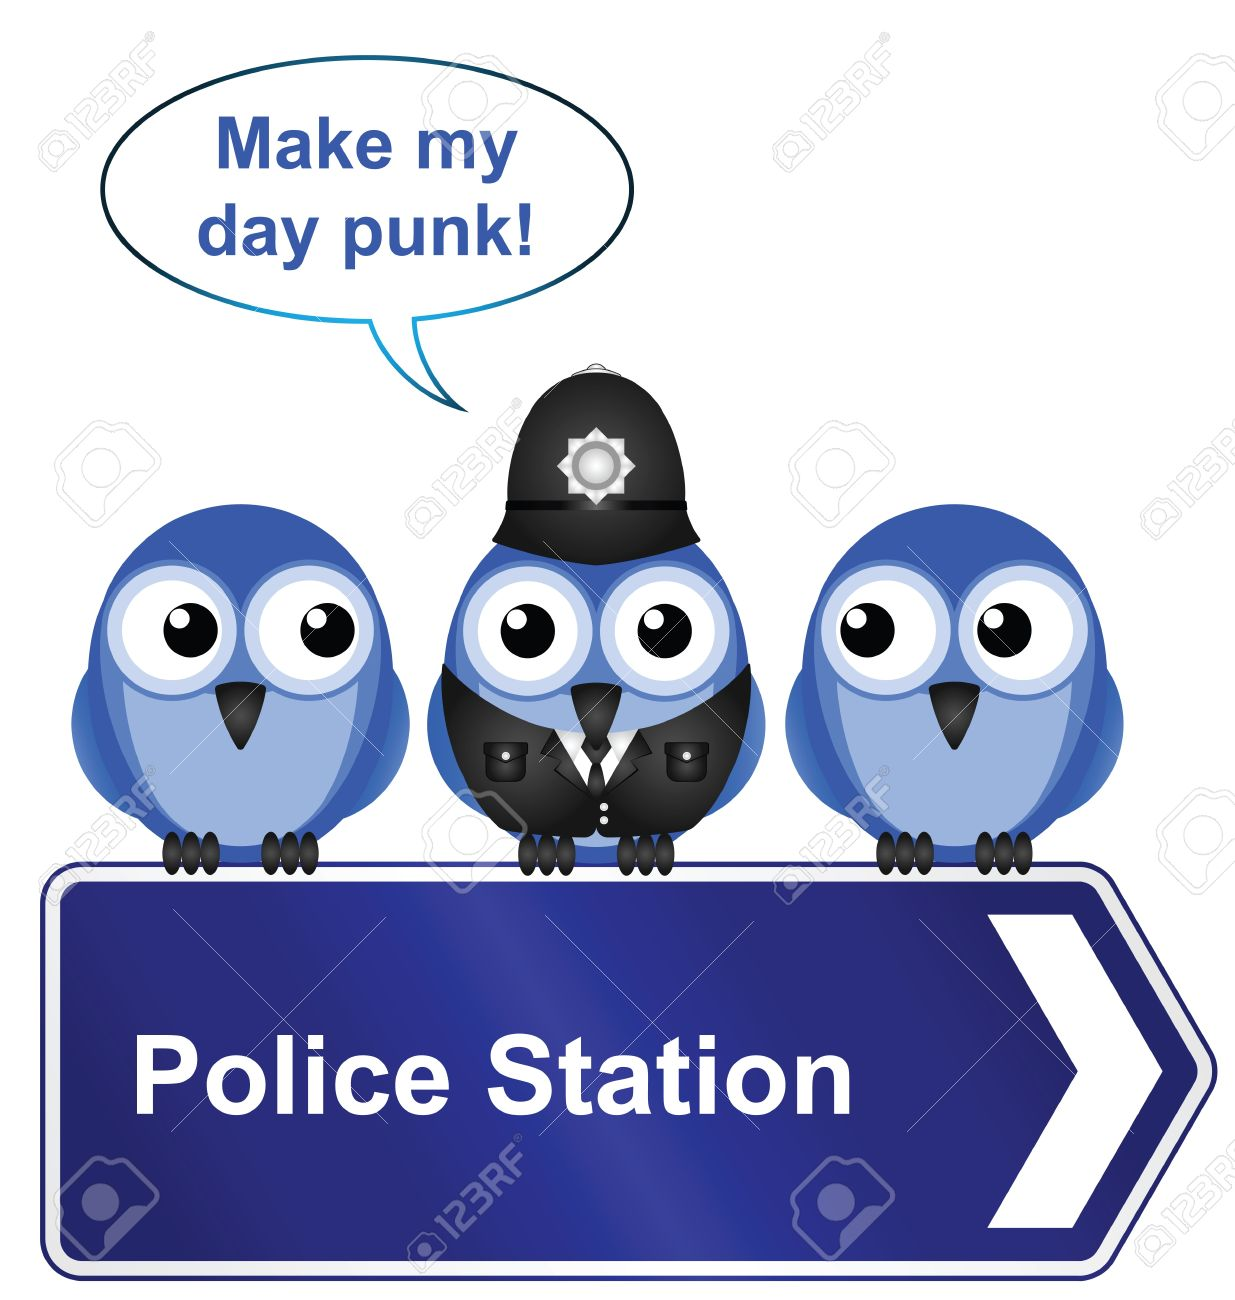 Comical police station sign isolated on white background Stock Vector - 15354160